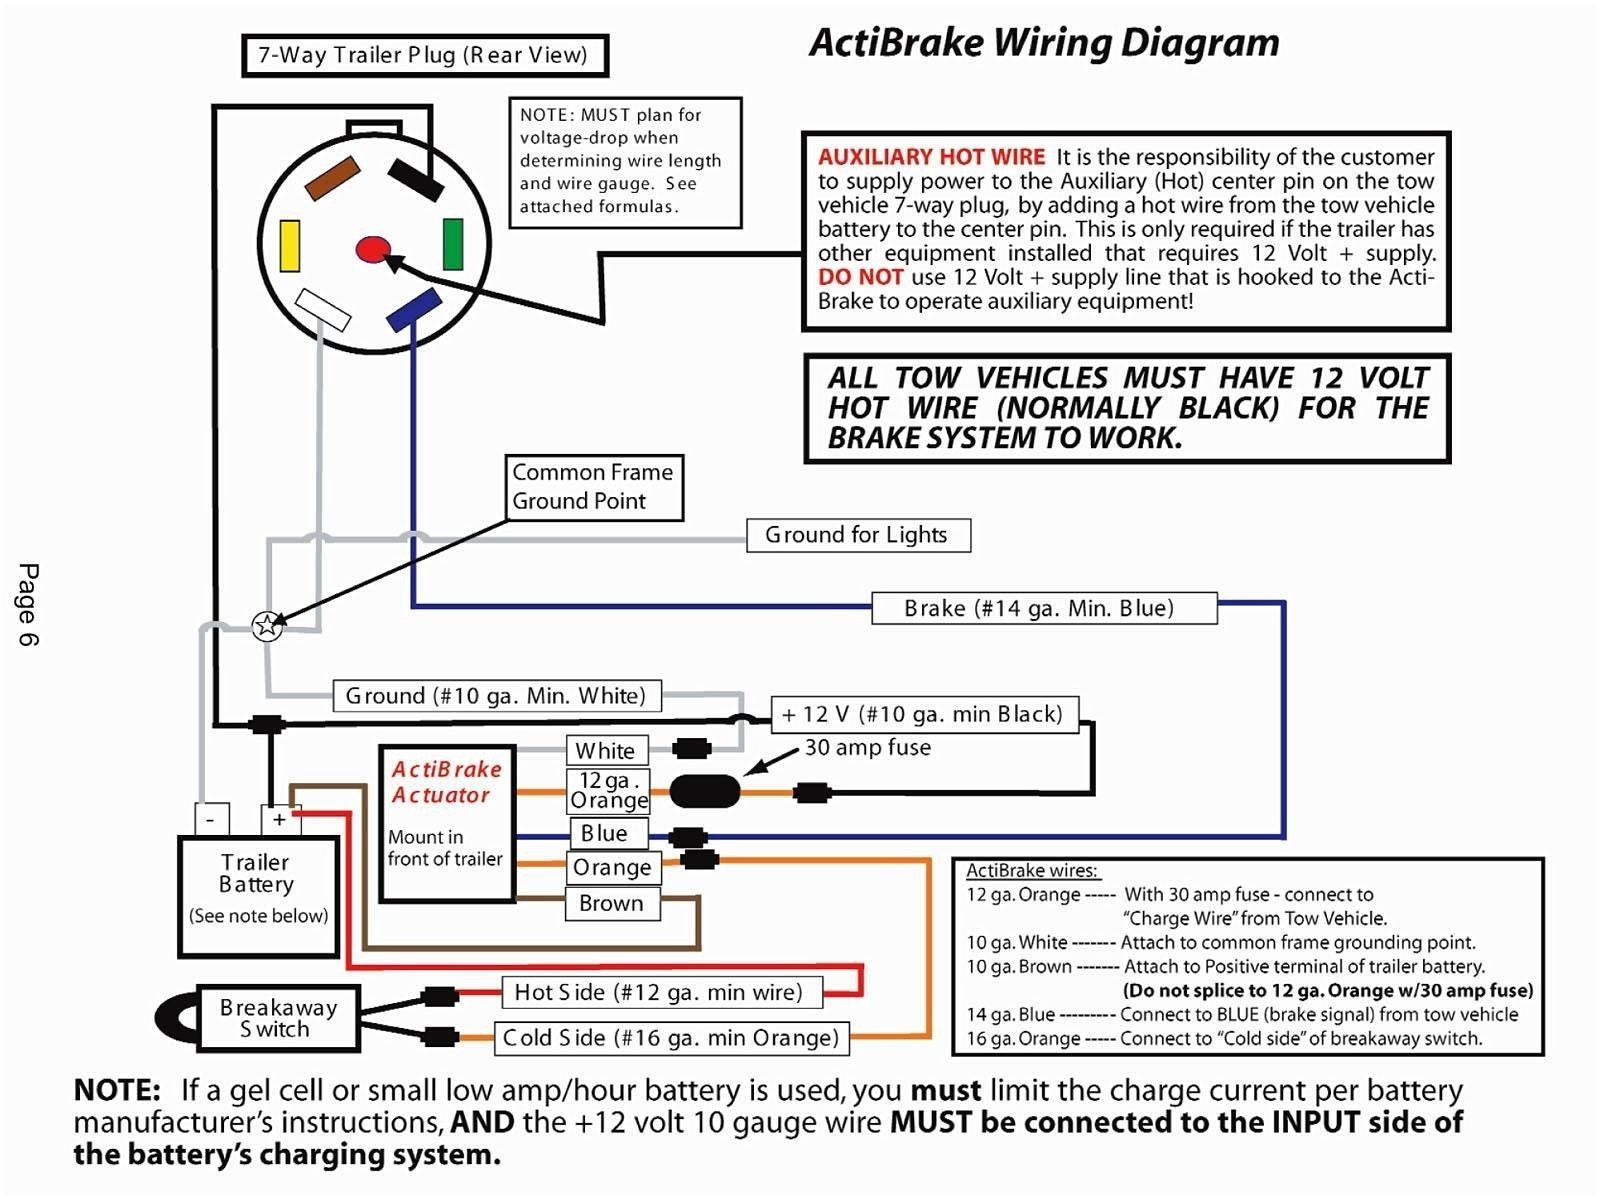 Nissan Titan Tail Light Wiring Diagram Rate Free Downloads Nissan - Nissan Titan Trailer Wiring Diagram